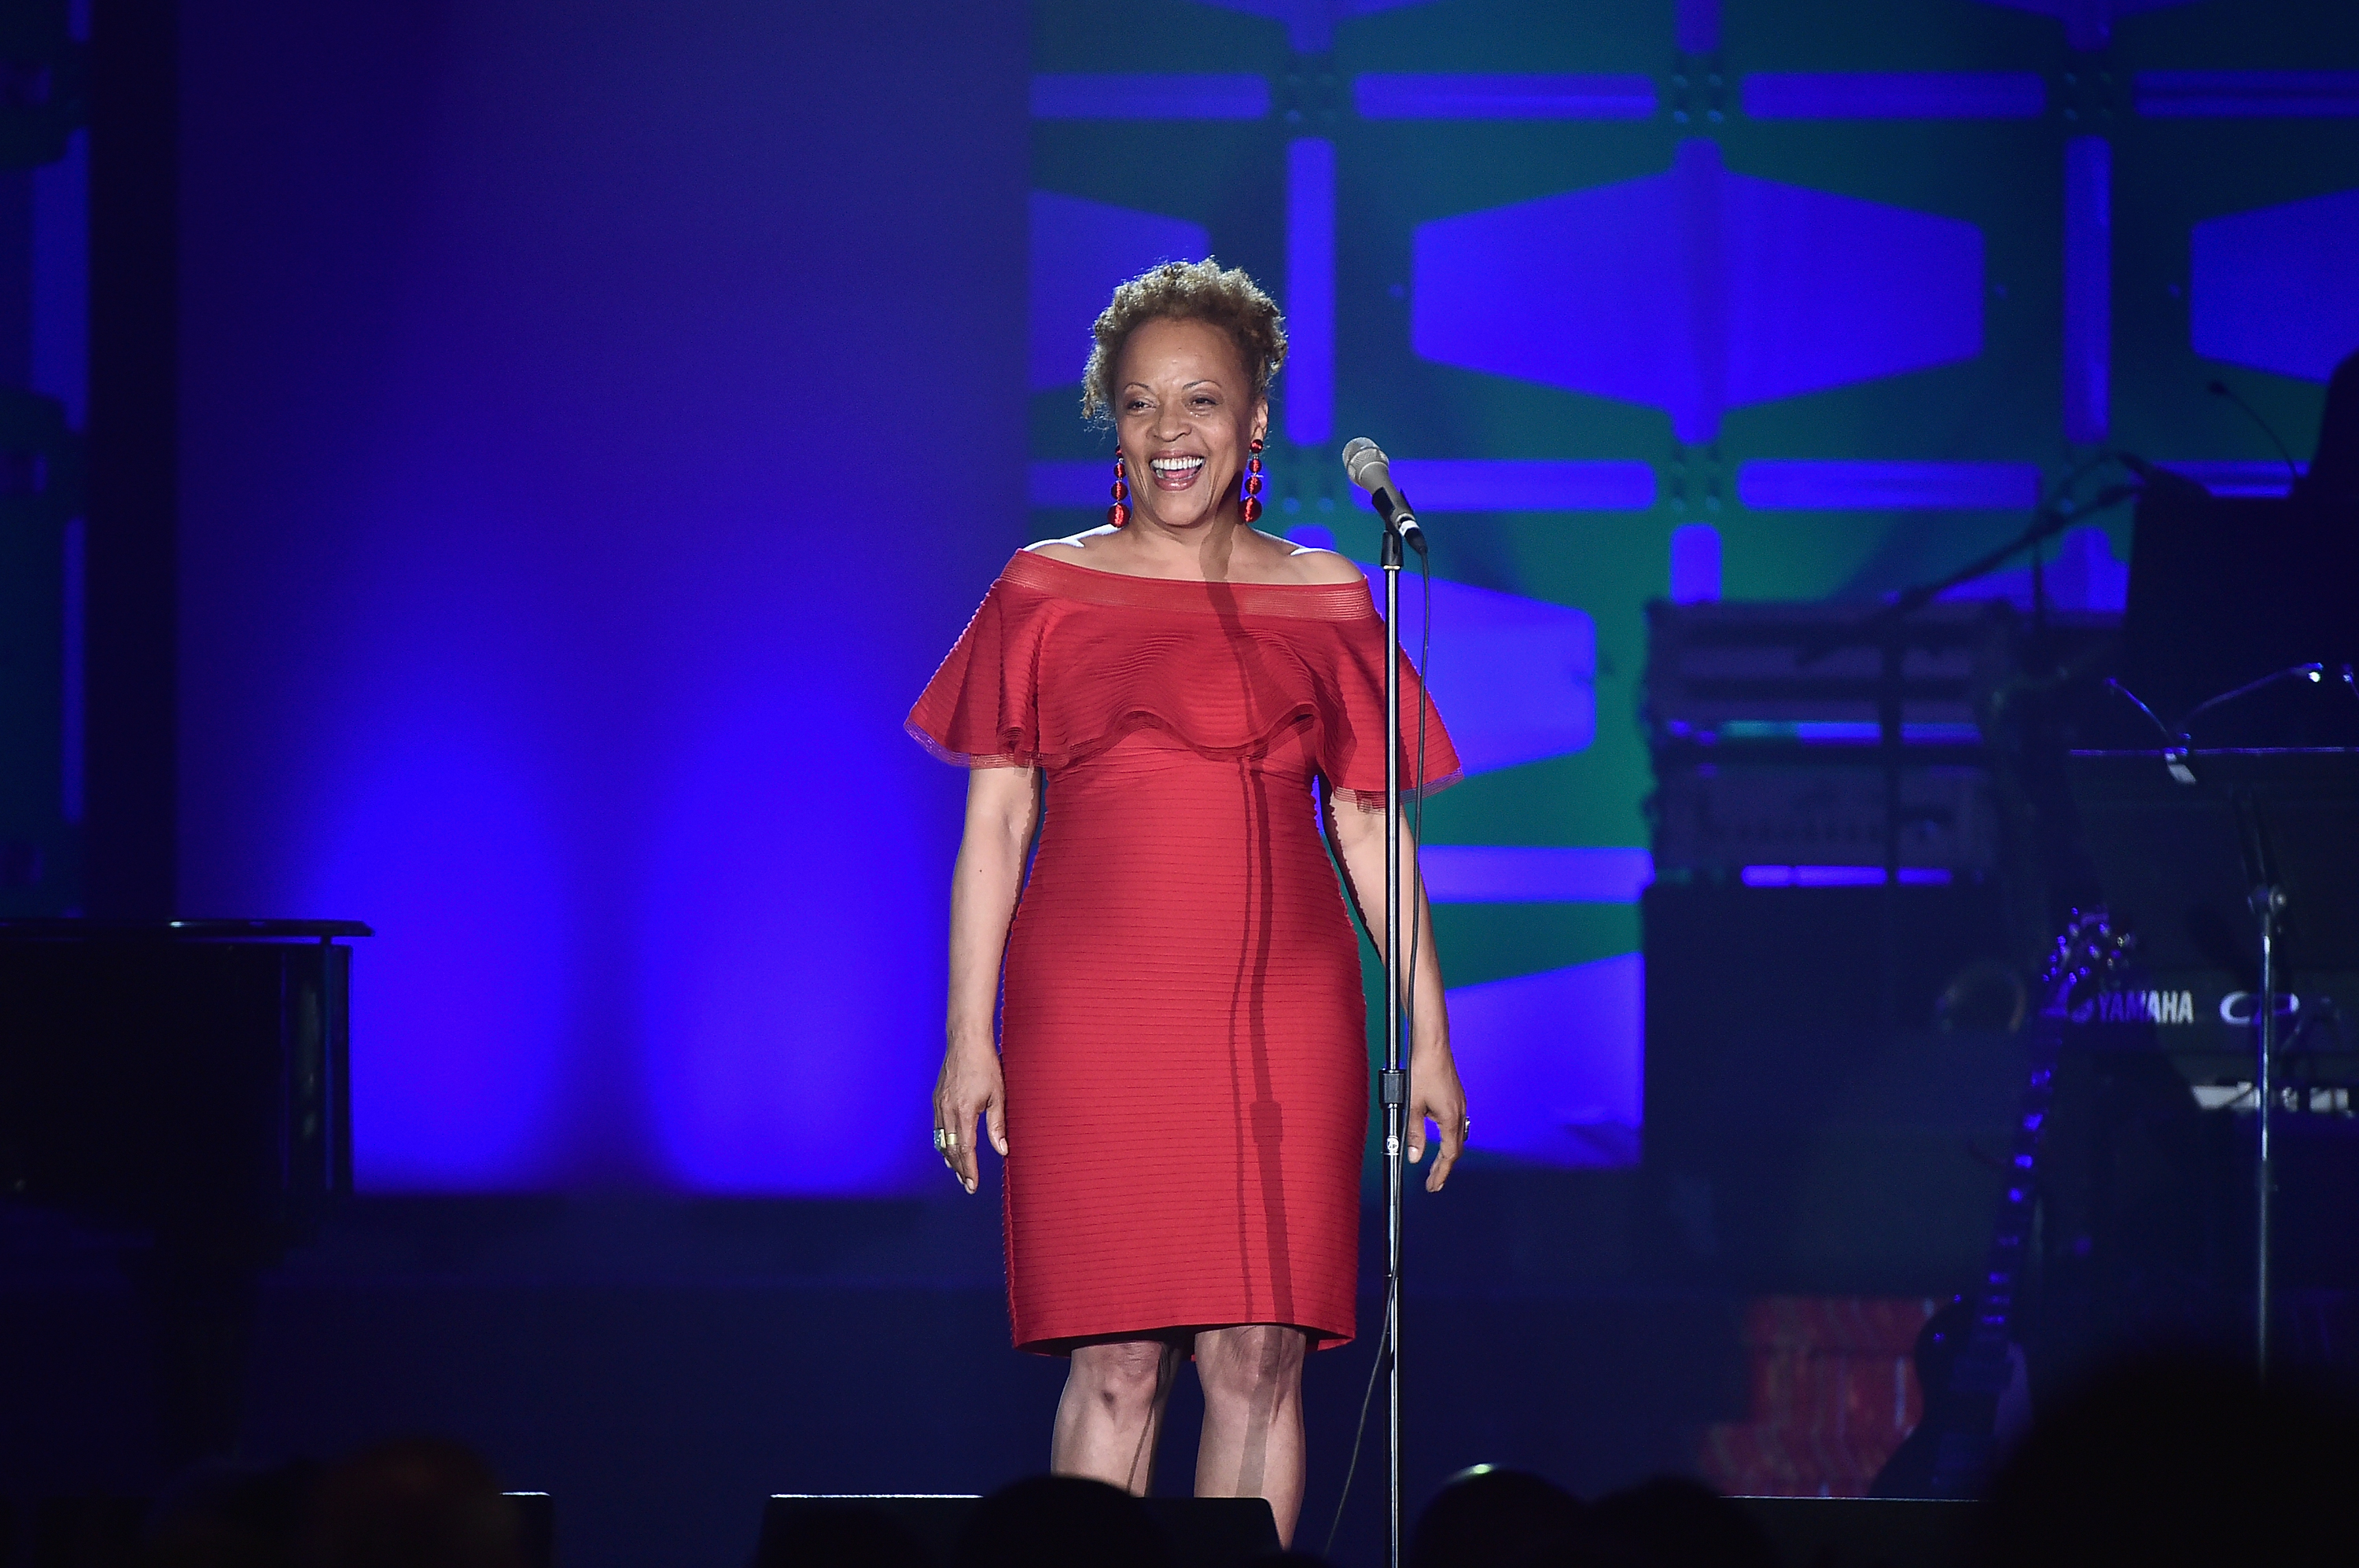 NEW YORK, NY - JUNE 15:  Cassandra Wilson performs onstage at the Songwriters Hall Of Fame 48th Annual Induction and Awards at New York Marriott Marquis Hotel on June 15, 2017 in New York City.  (Photo by Theo Wargo/Getty Images for Songwriters Hall Of Fame) *** Local Caption *** Cassandra Wilson